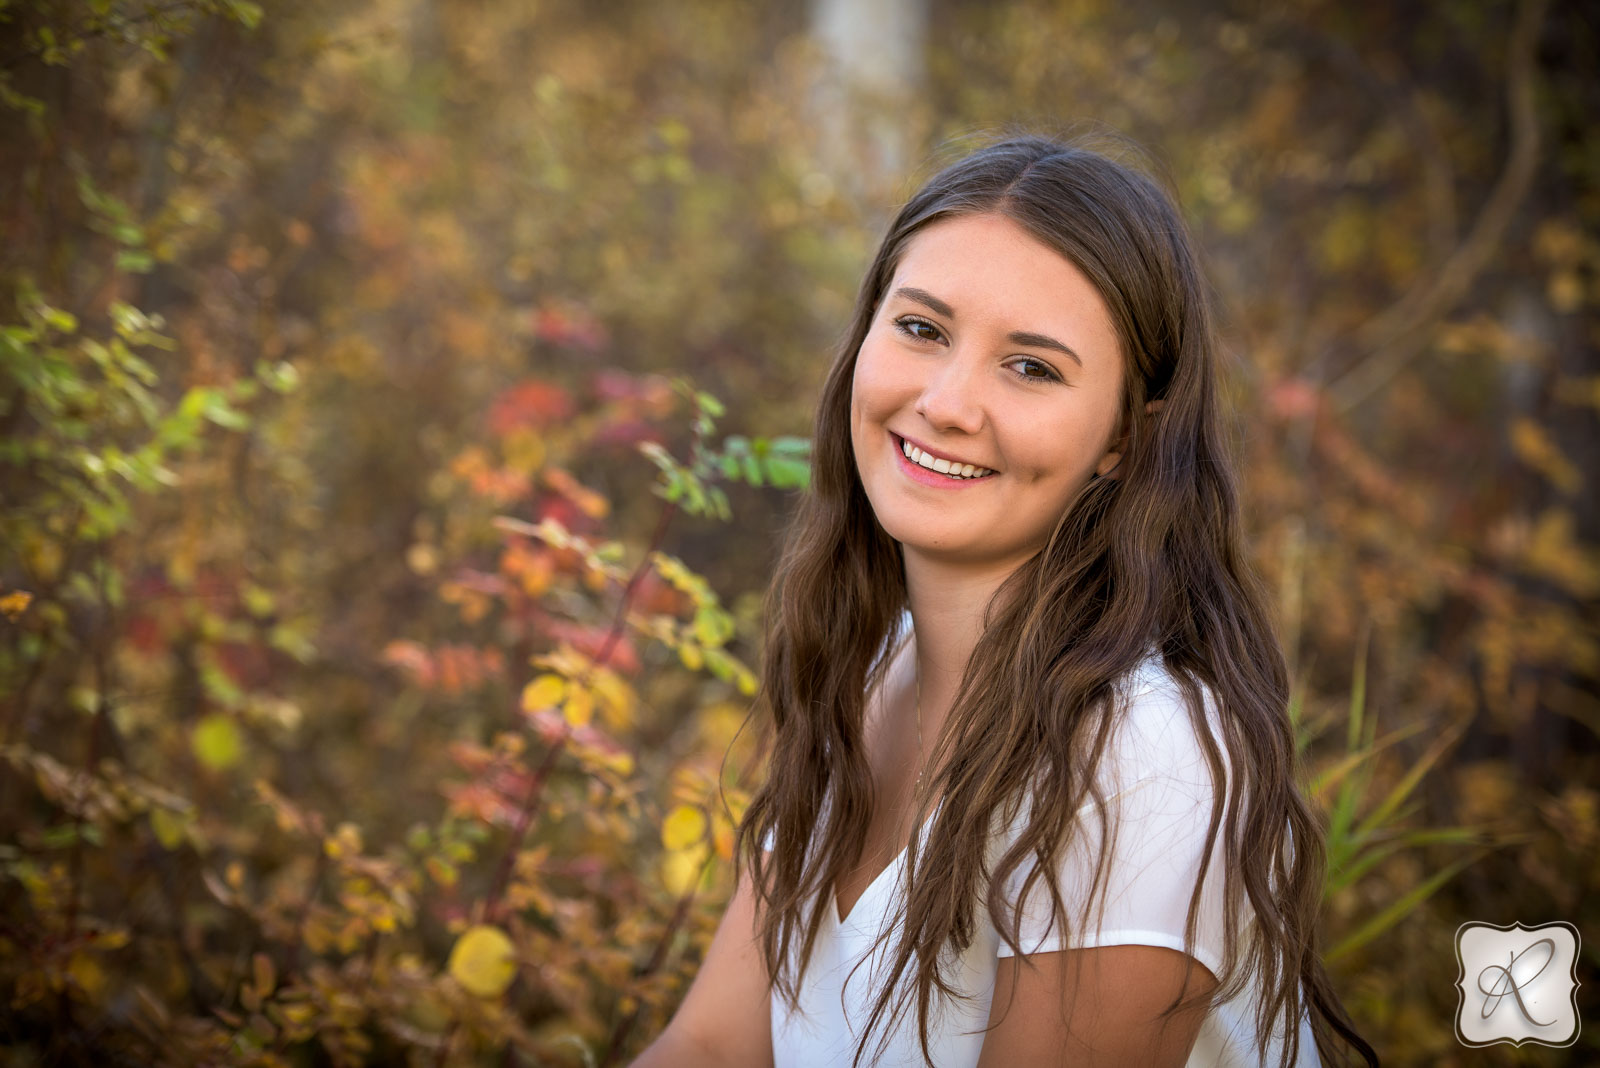 Beautiful fall senior portraits by Allison Ragsdale Photography